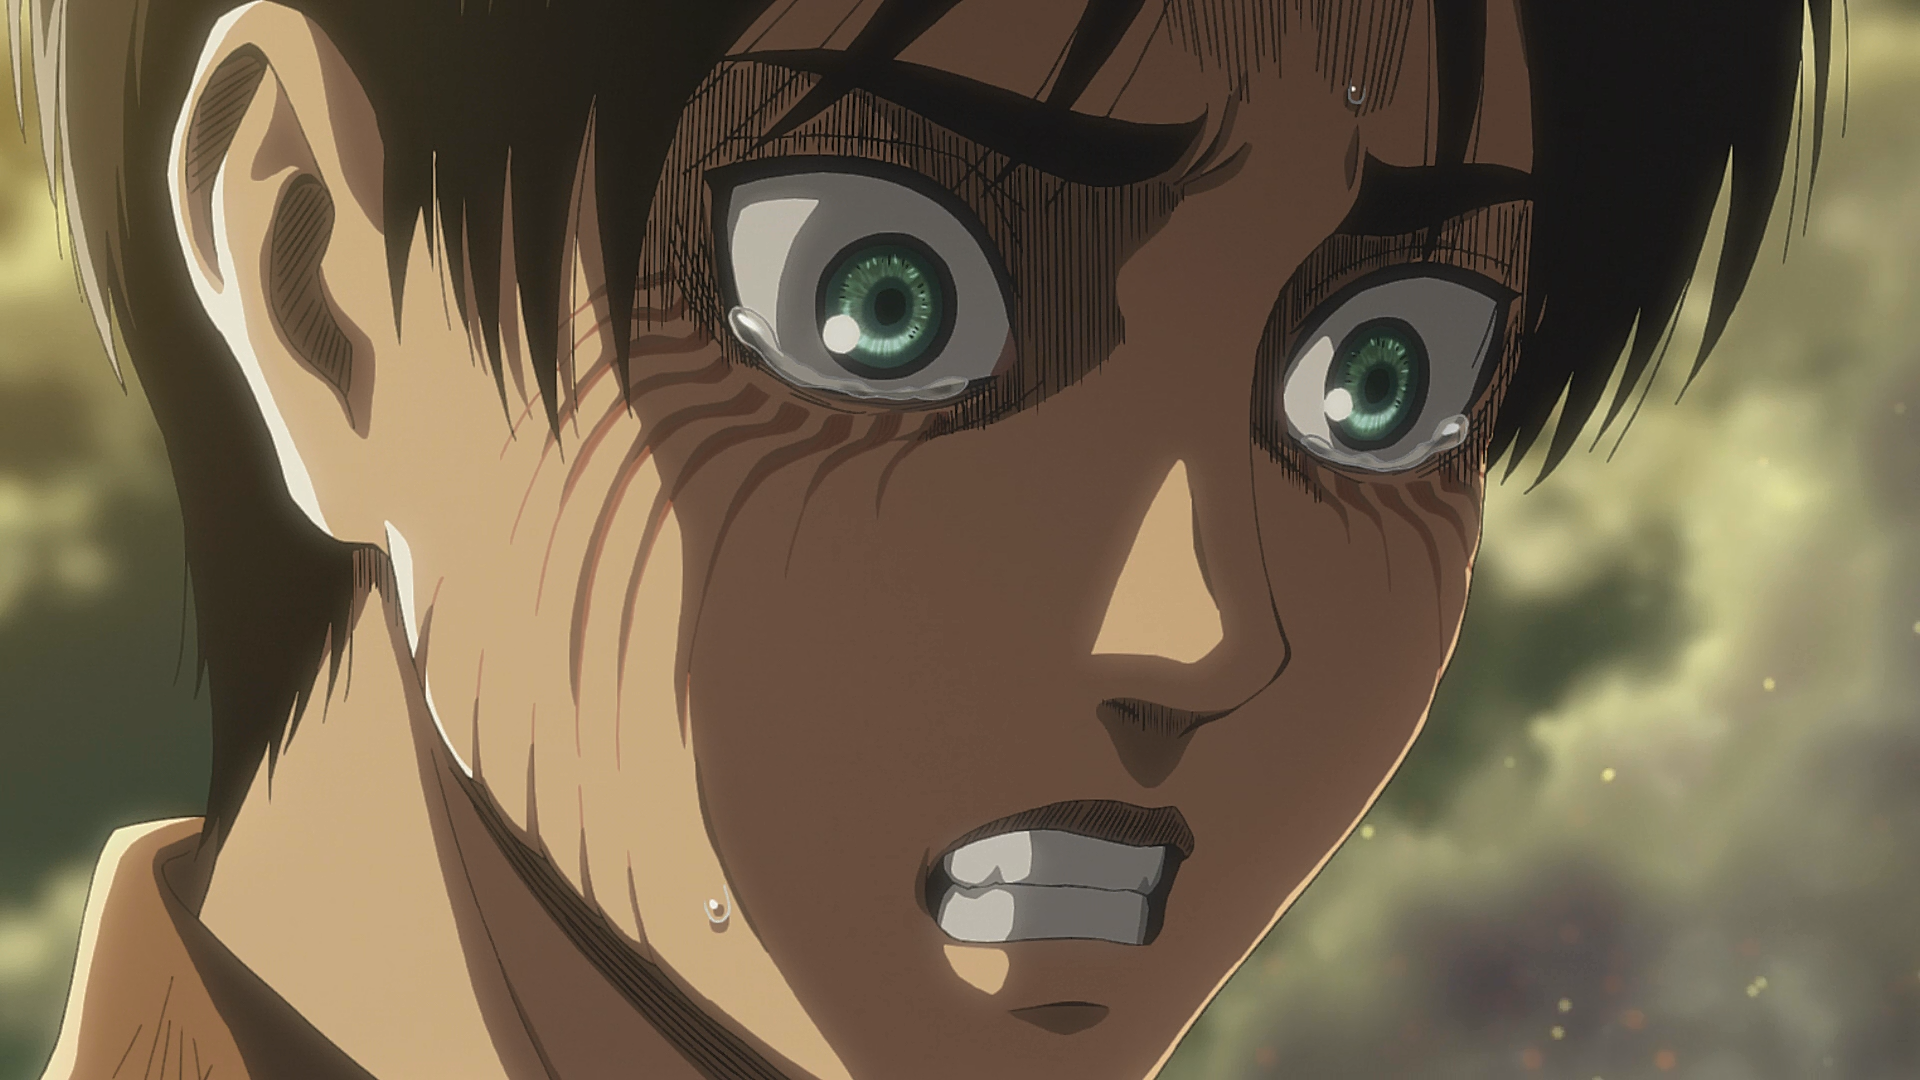 Attack on Titan Episode 58 Air Date - GameRevolution